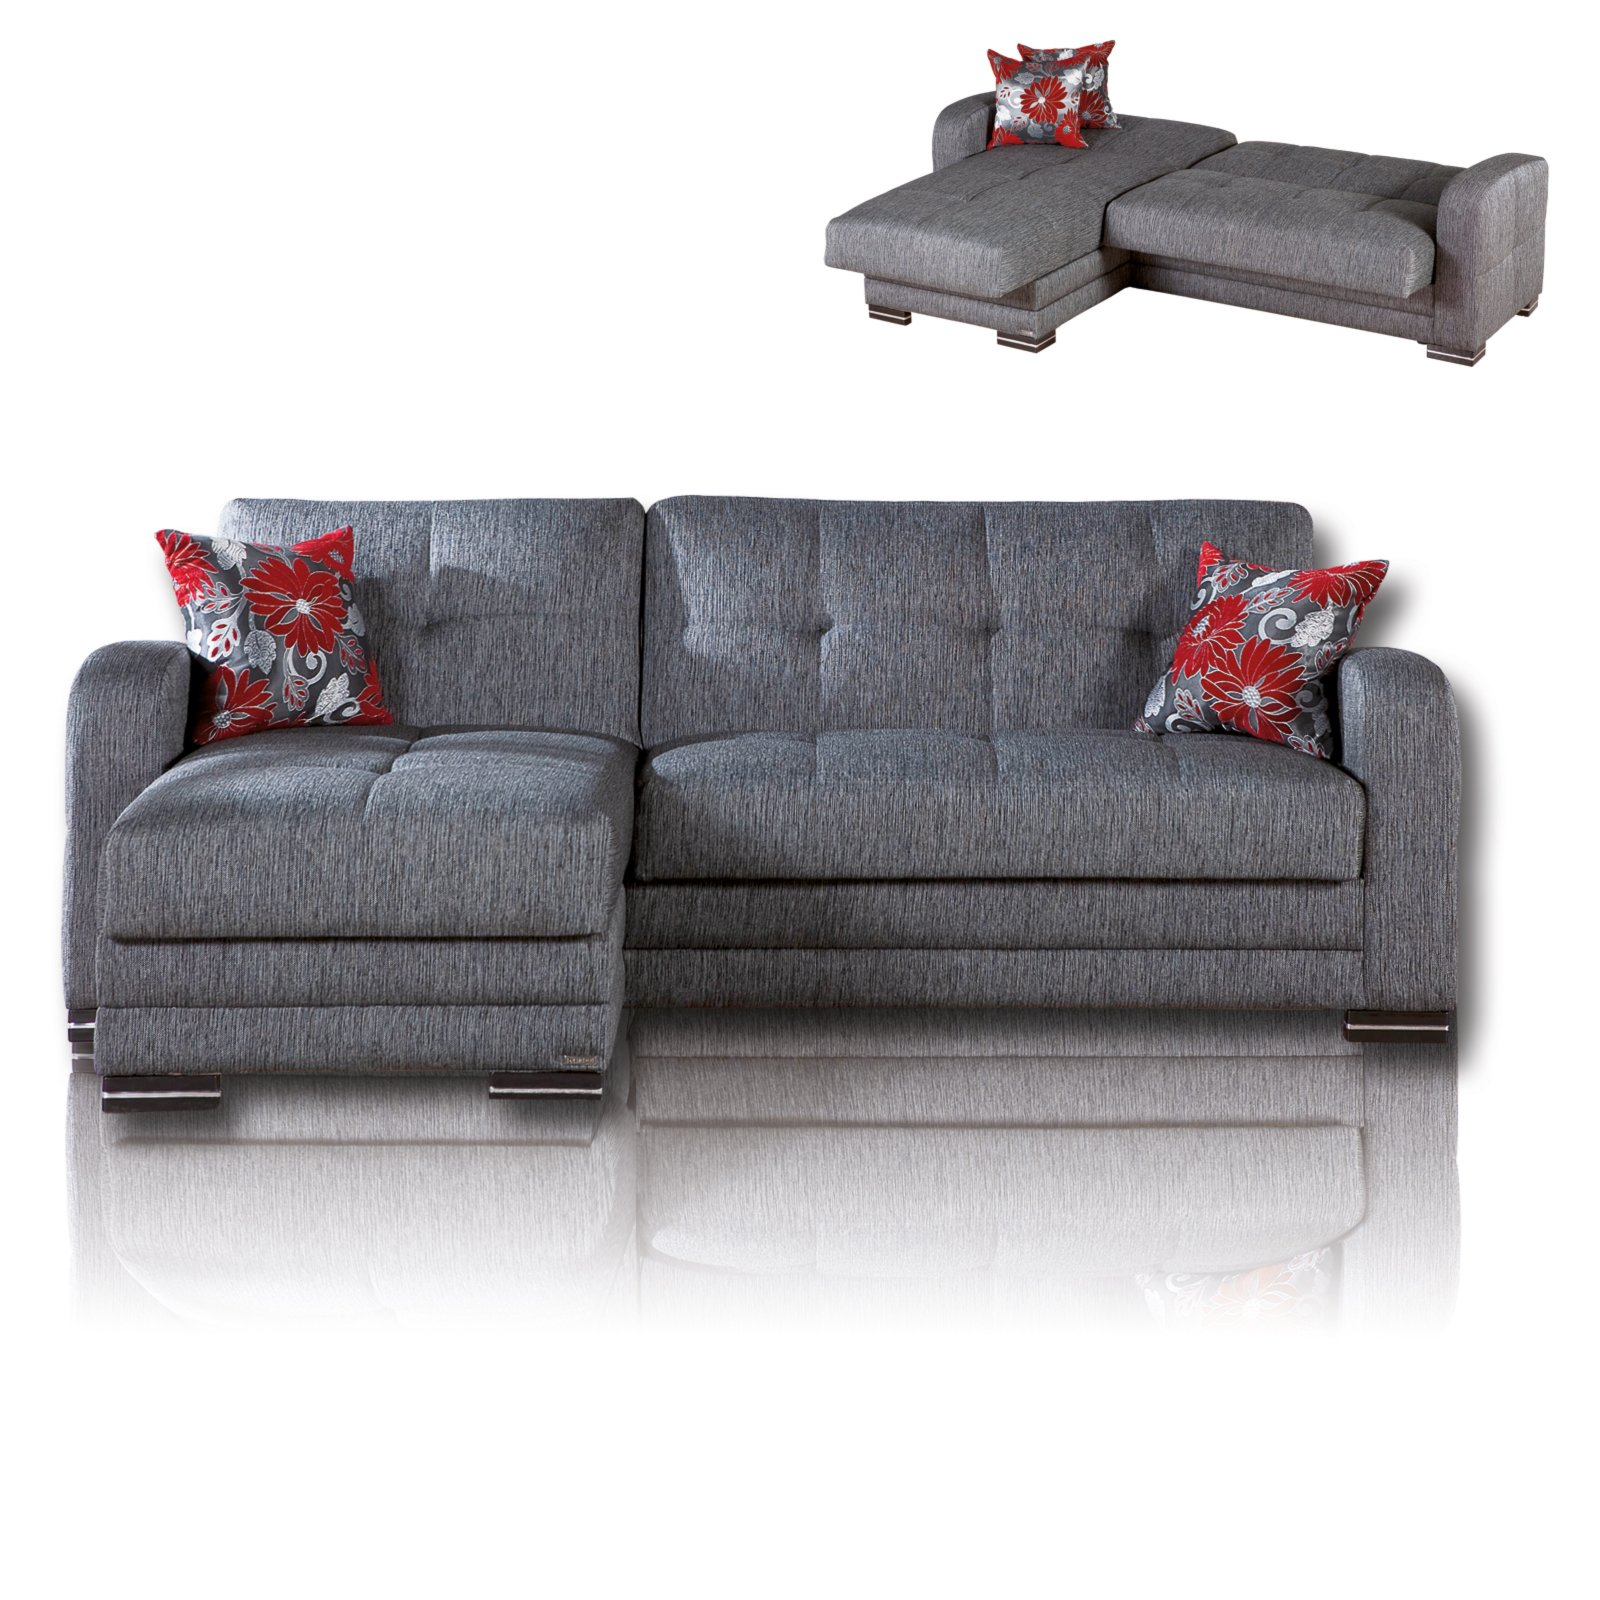 roller ecksofa grau schwarz mit funktionen ebay. Black Bedroom Furniture Sets. Home Design Ideas